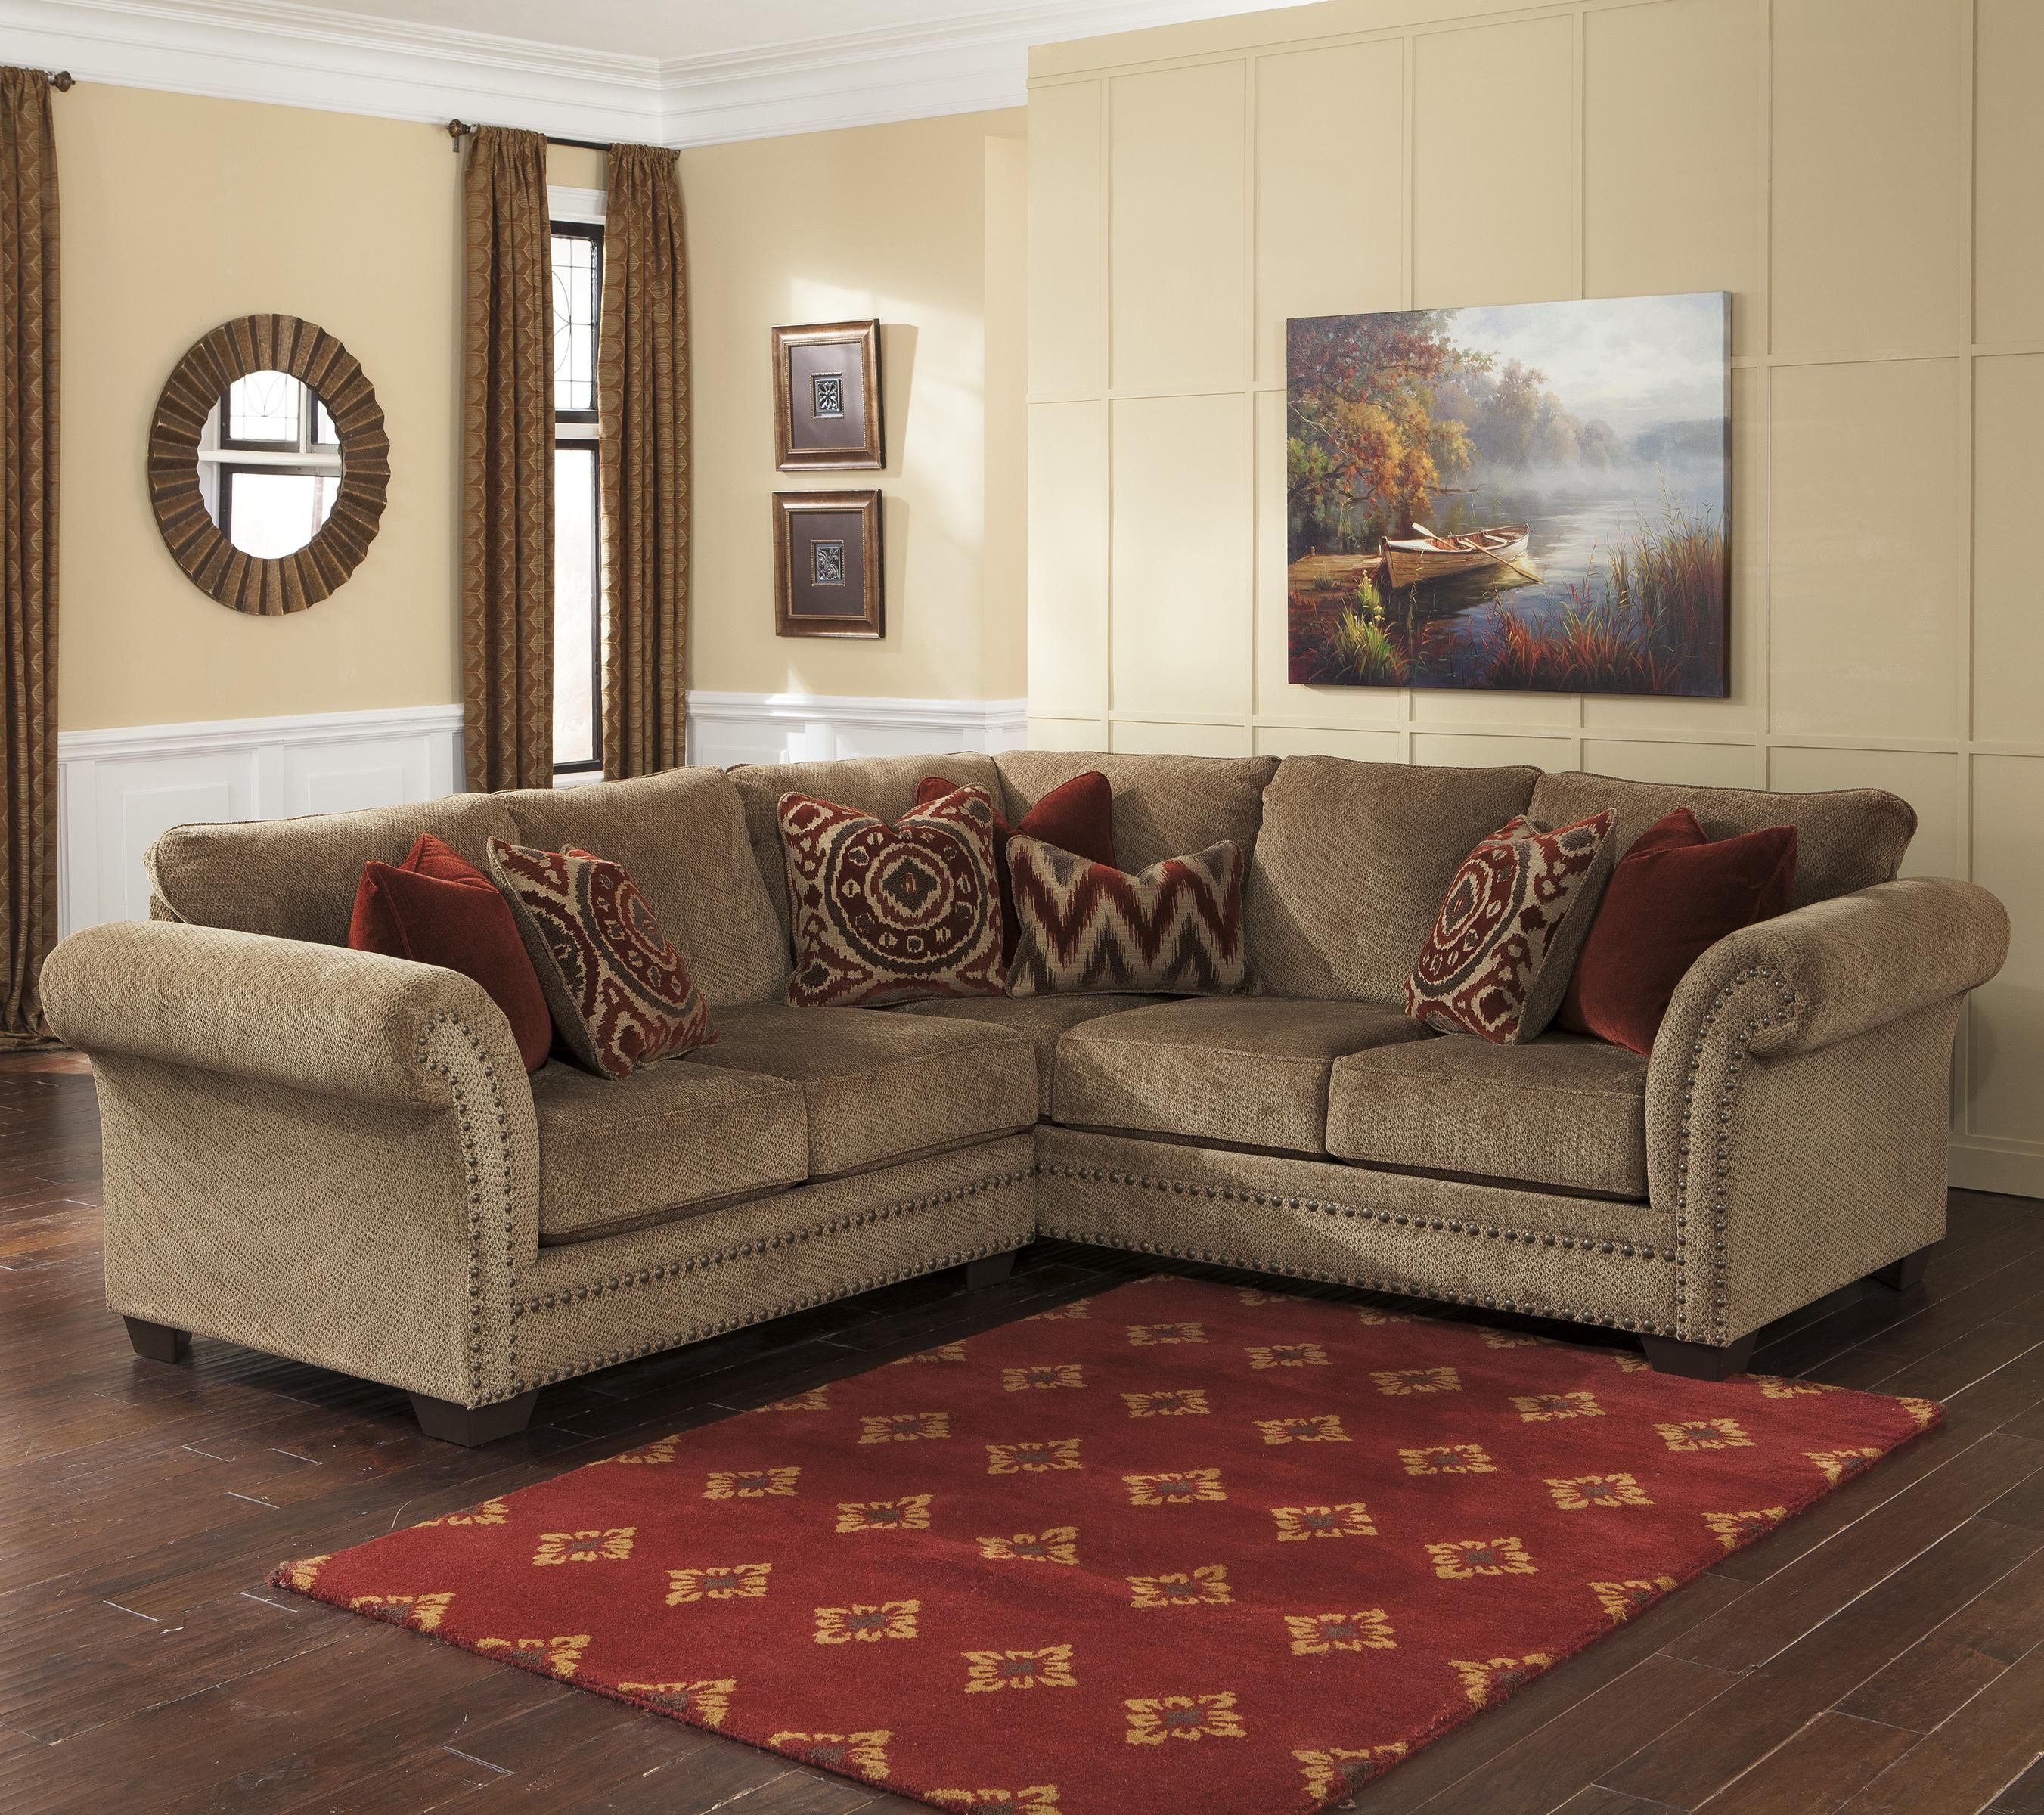 Best Grecian Amber 2 Piece Sectional With Left Loveseat By Benchcraft Living Room Furniture 640 x 480